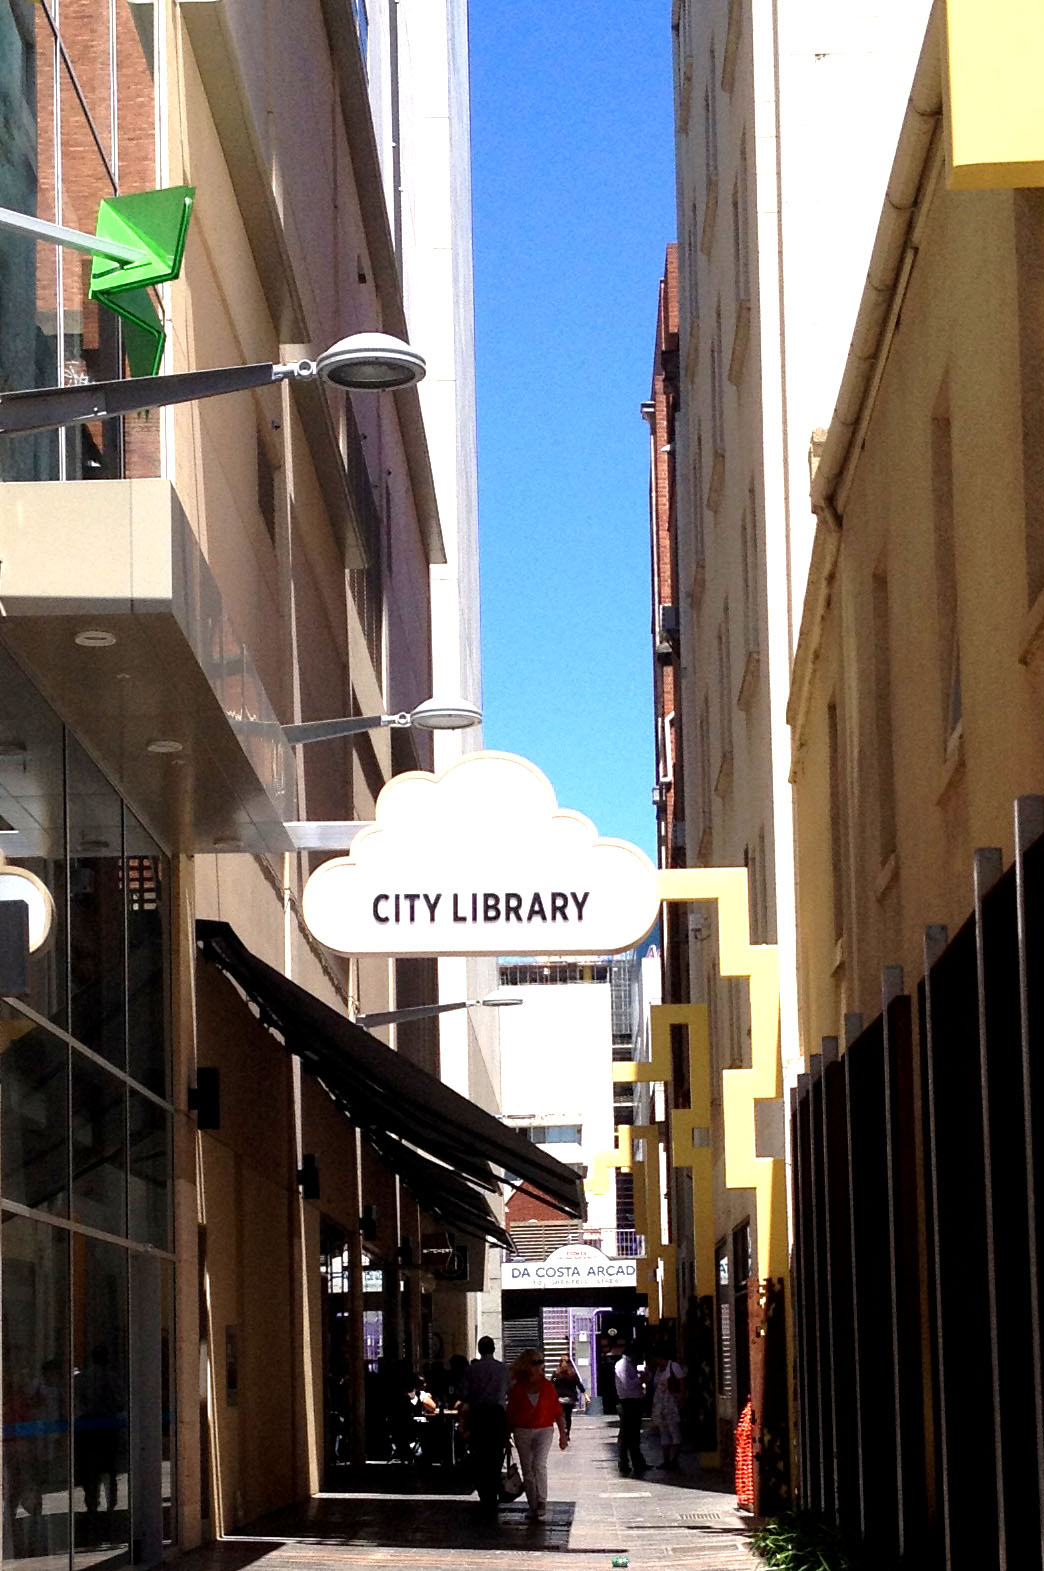 Entrance to the City Library on Francis Street ( via the Adelaide City Council)